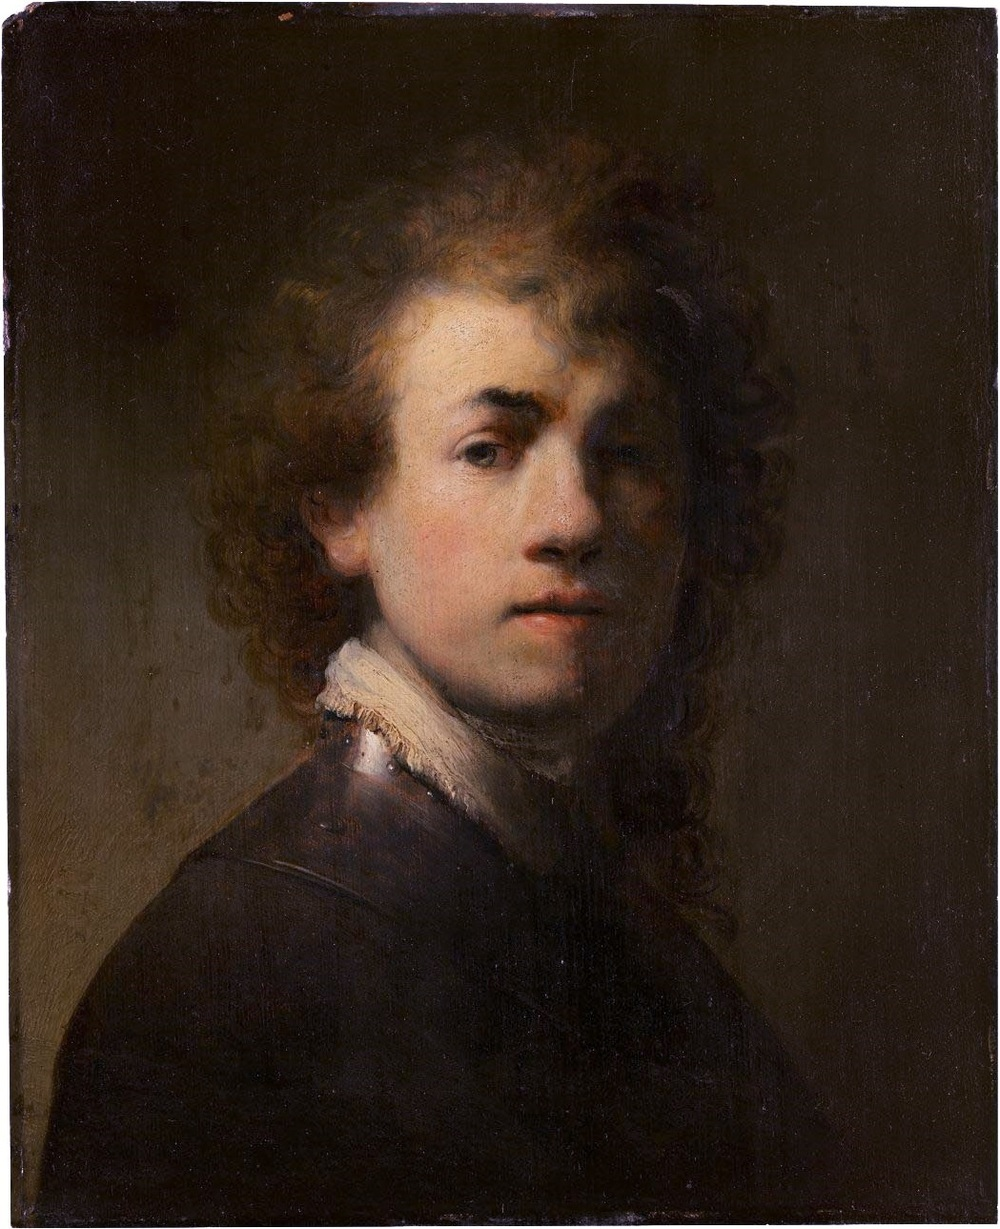 Rembrandt van Rijn,  Self-Portrait,  1629, Oil on canvas